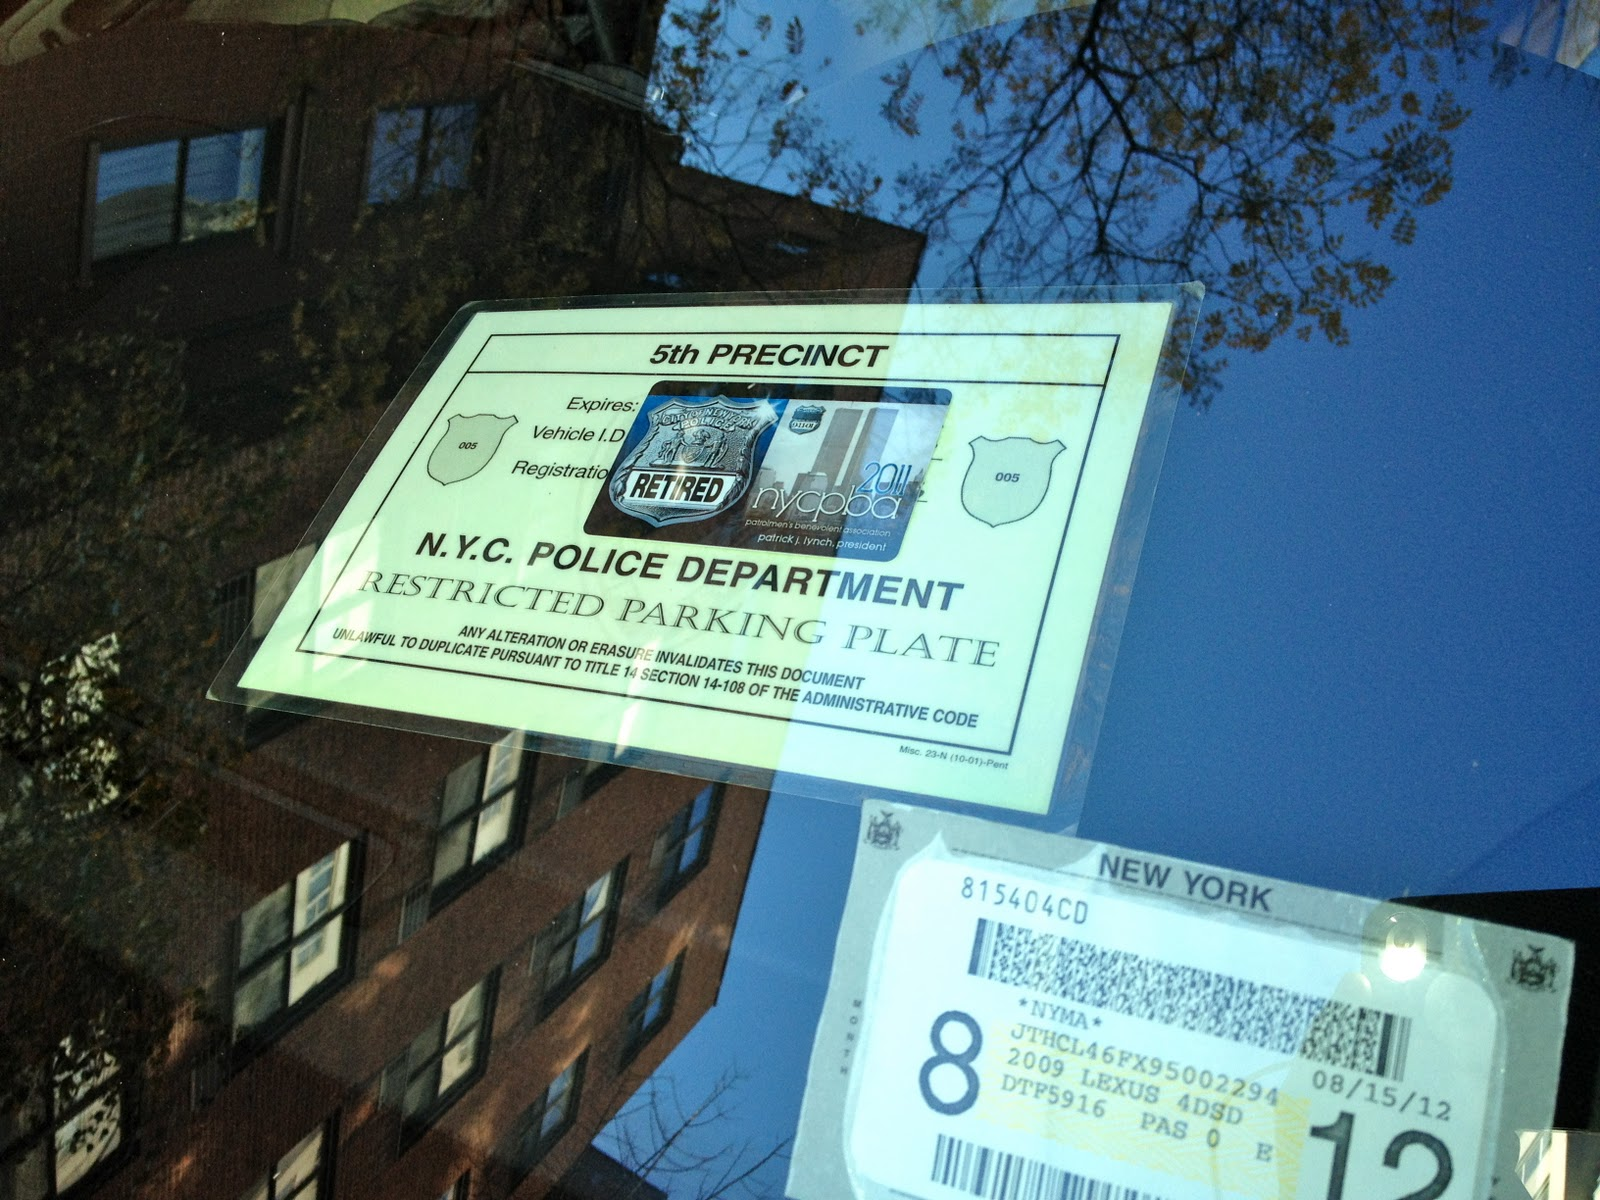 Nypd parking placard 5th precinct nyc pba card this is illegal 120 w 12th street